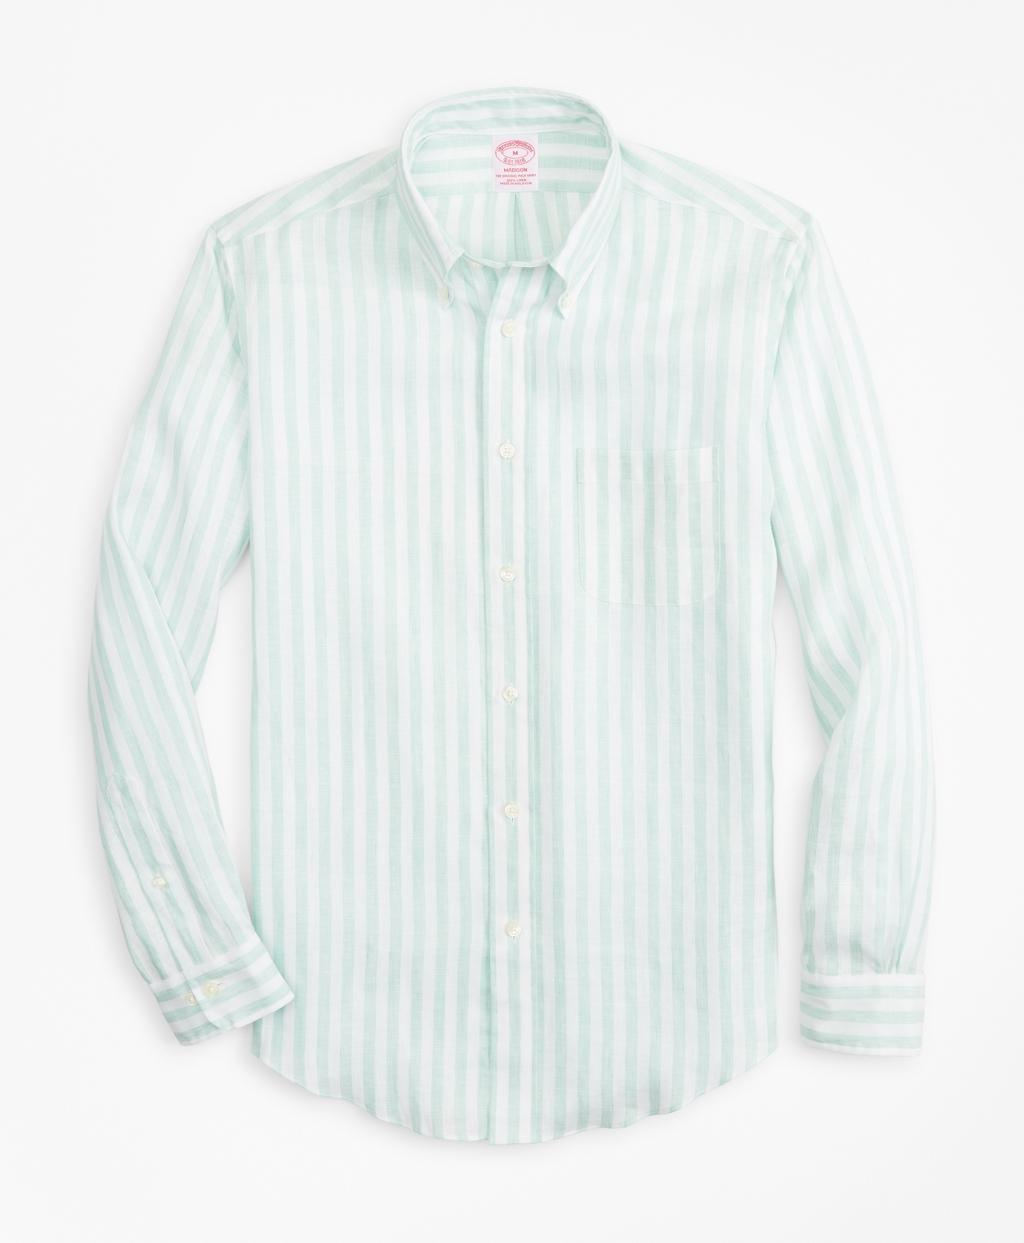 e4319ad69 Lyst - Brooks Brothers Madison Fit Stripe Irish Linen Sport Shirt in ...